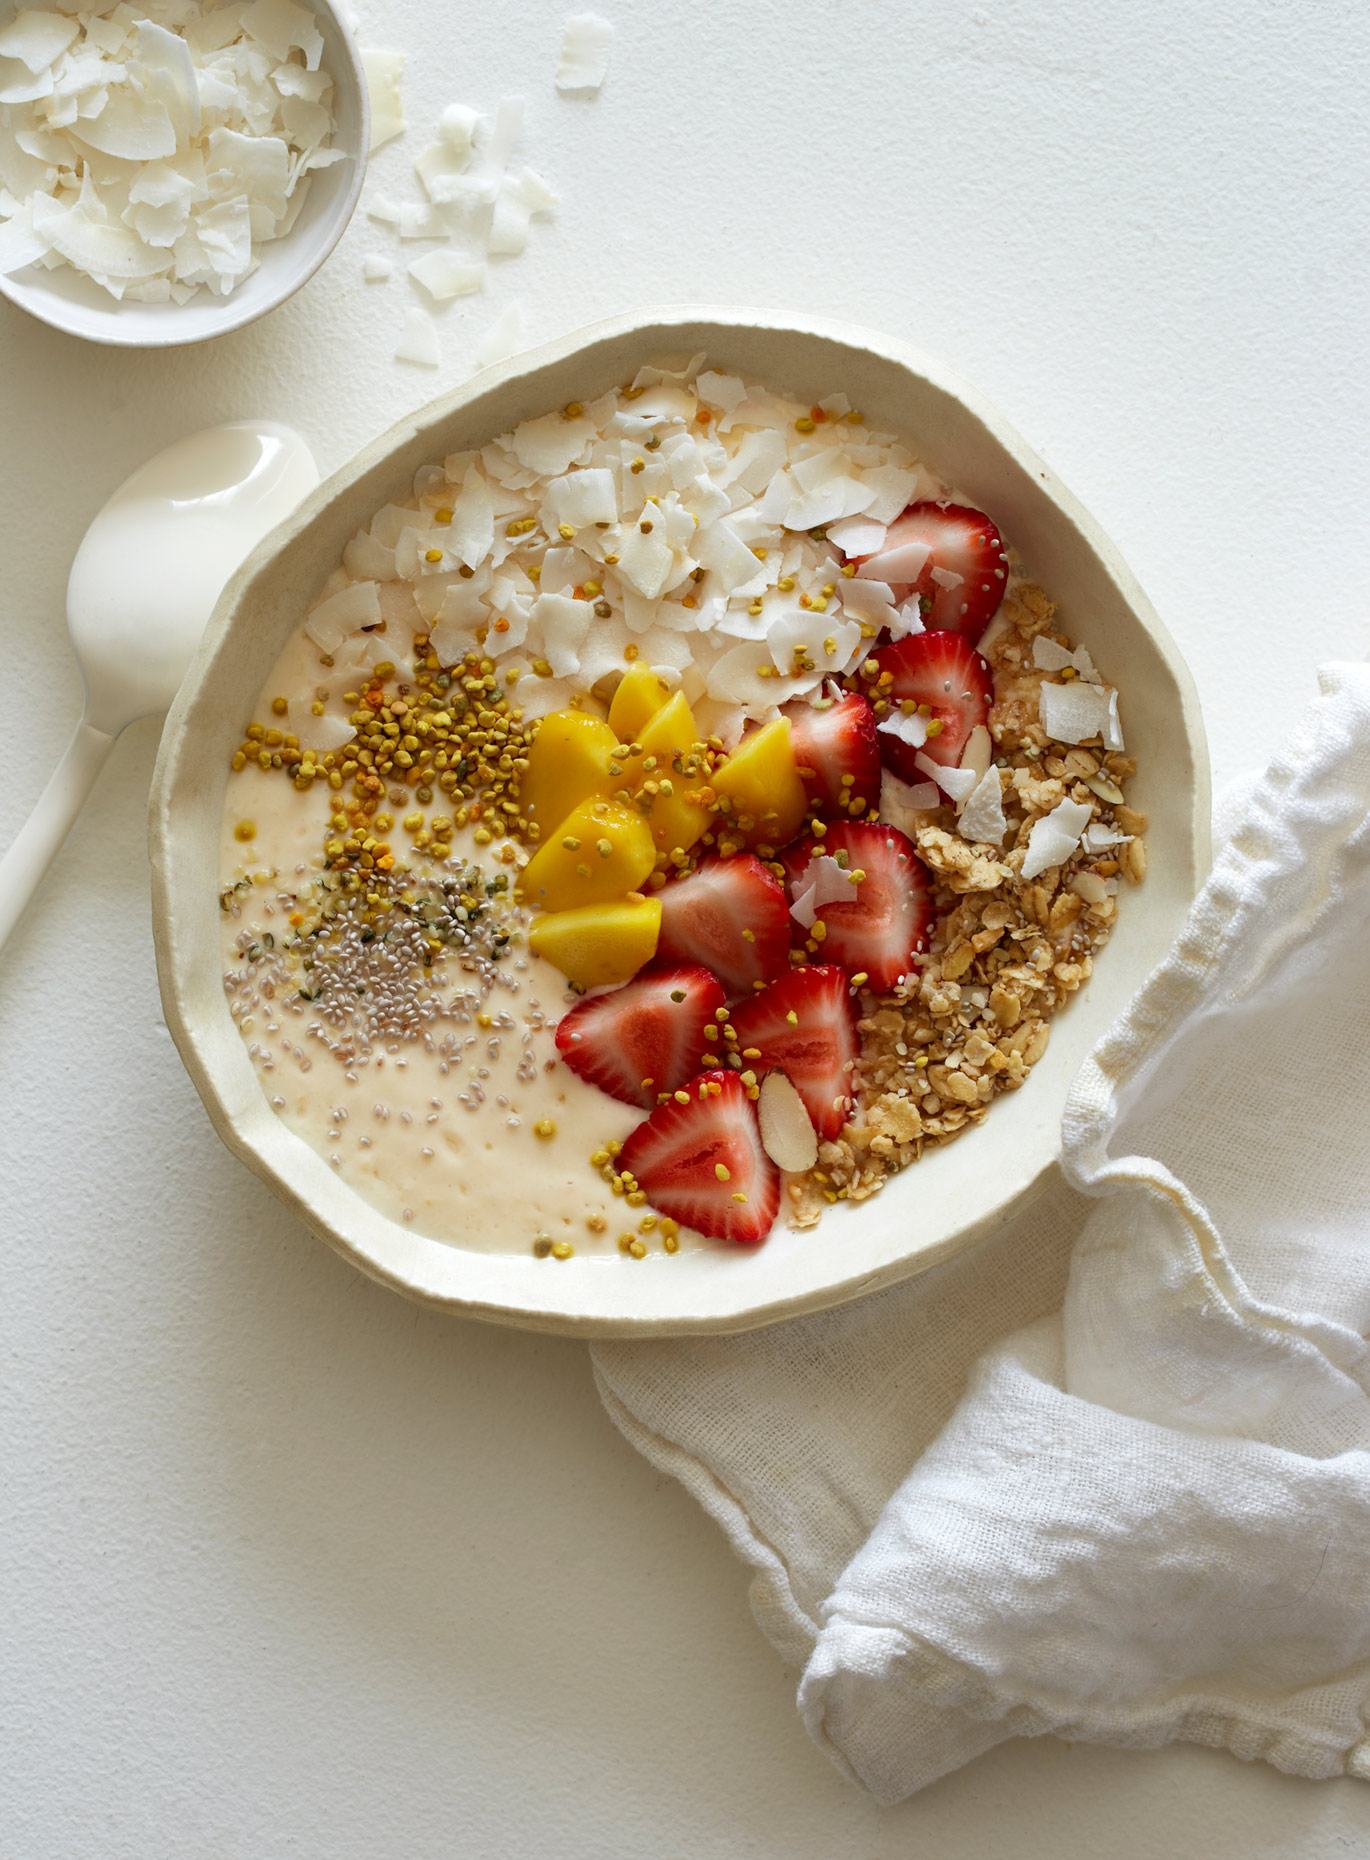 Smoothie bowl by Teri Lyn Fisher a food photographer